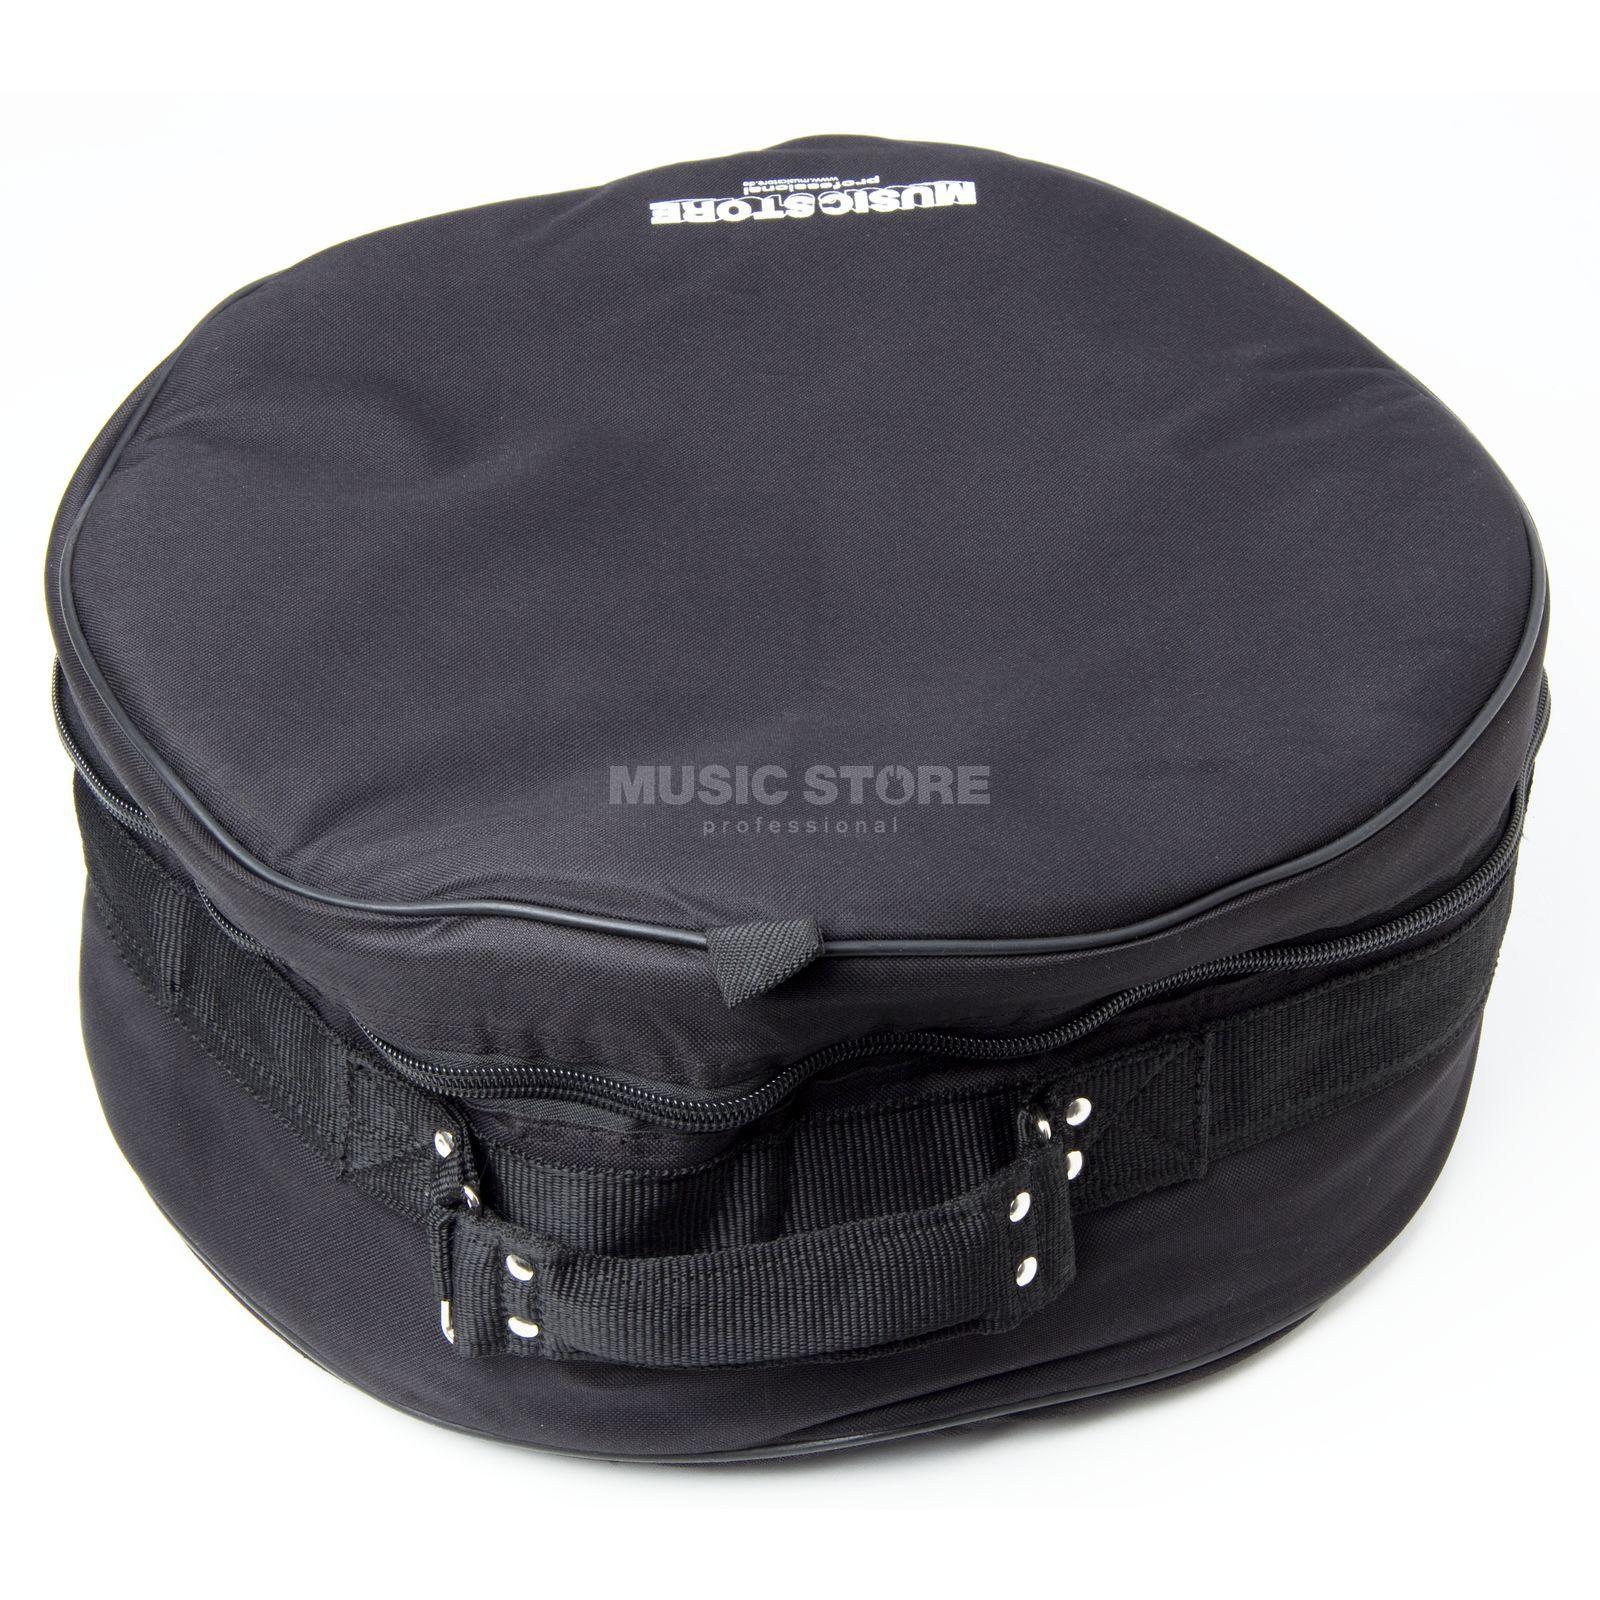 "MUSIC STORE DC1465S Pro II Drumbag for 14x6.5"" Snares Product Image"